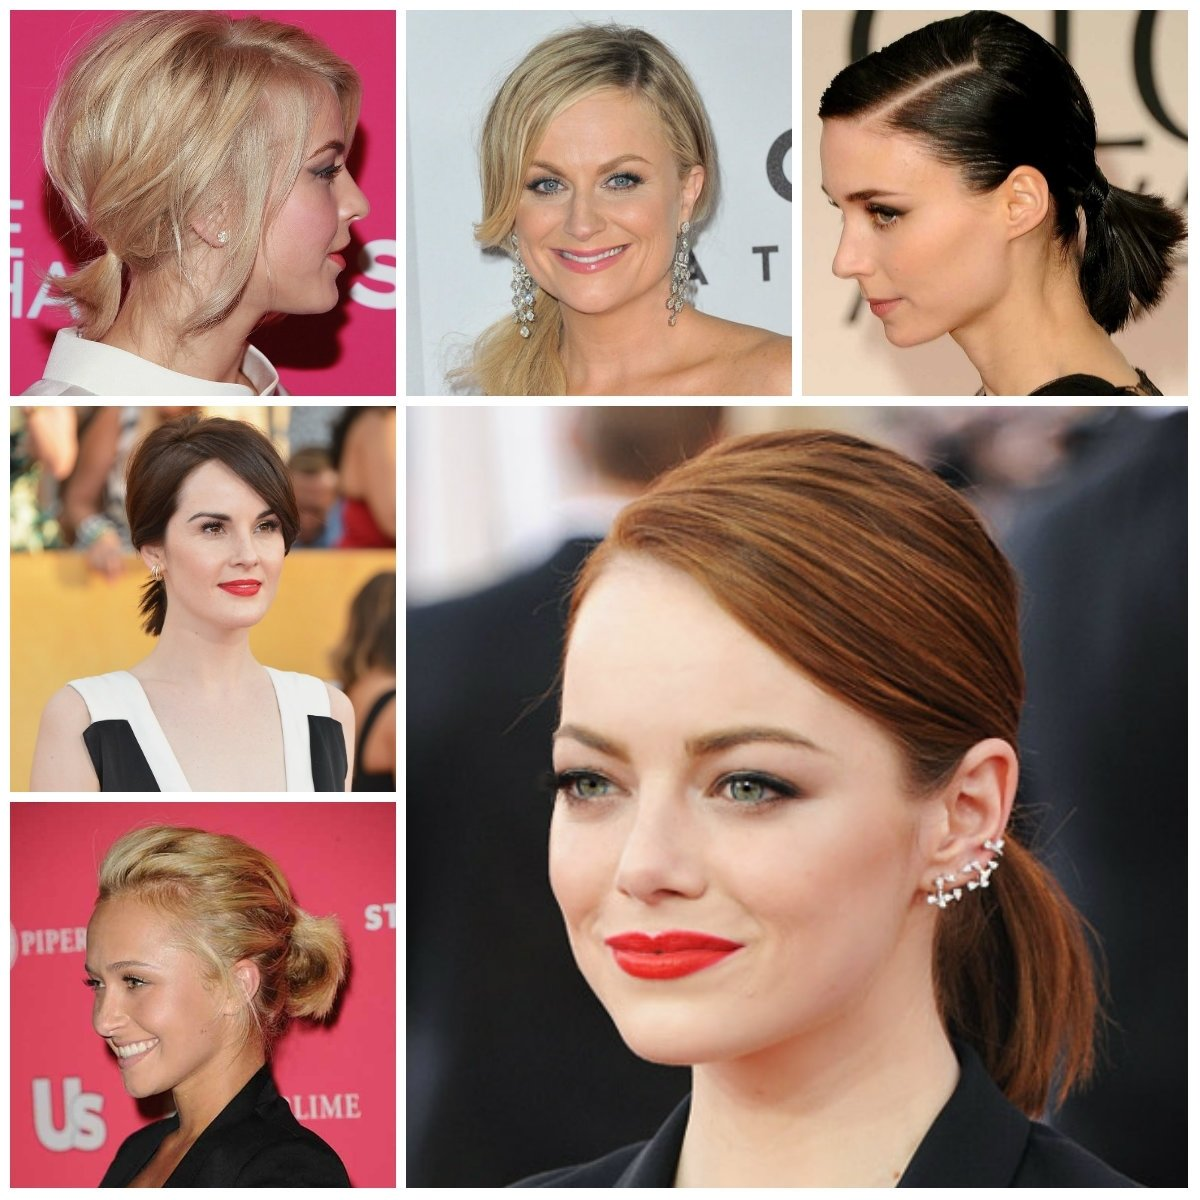 10 Unique Ponytail Ideas For Short Hair short ponytail hairstyles from hollywood for 2017 new haircuts to 2021